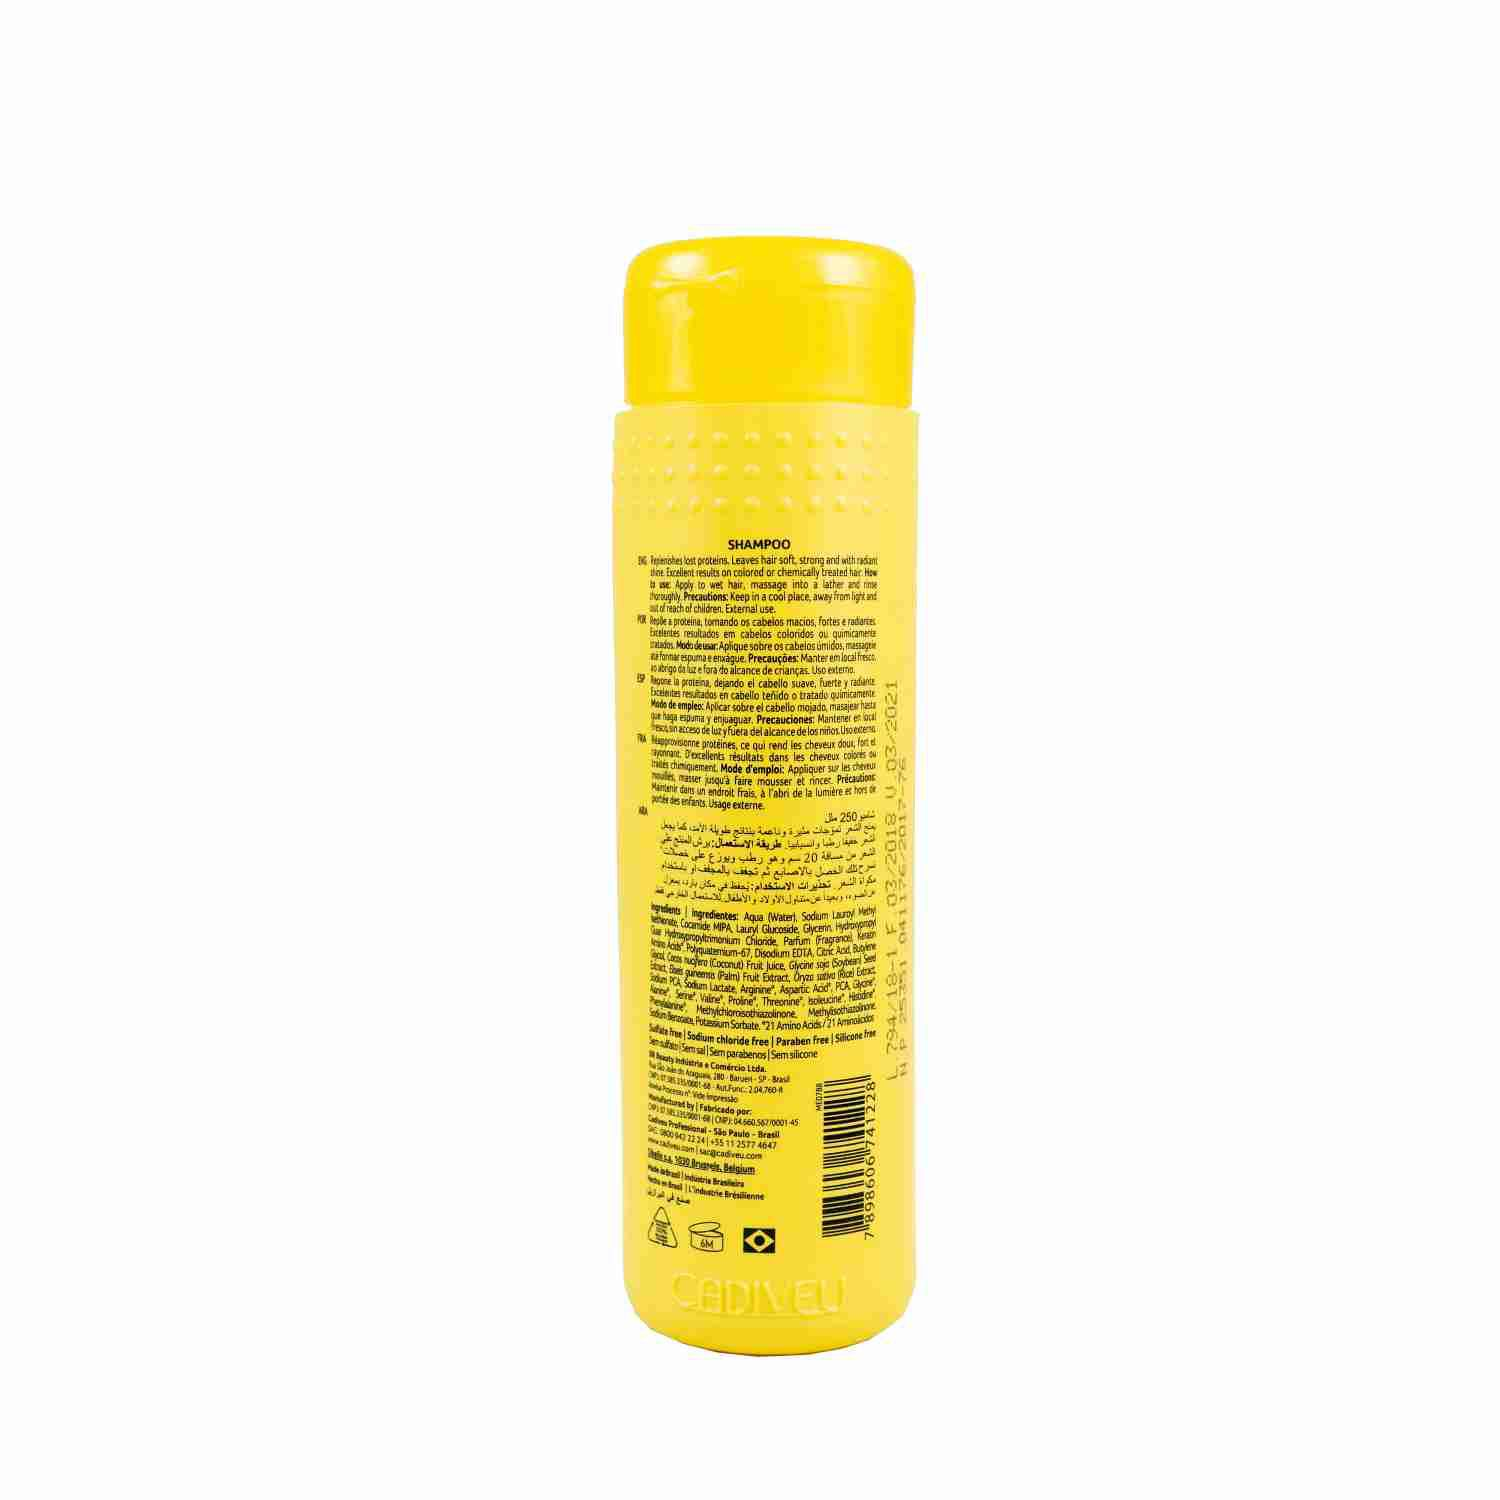 Sol do Rio - Shampoo 250ml - Cadiveu Professional